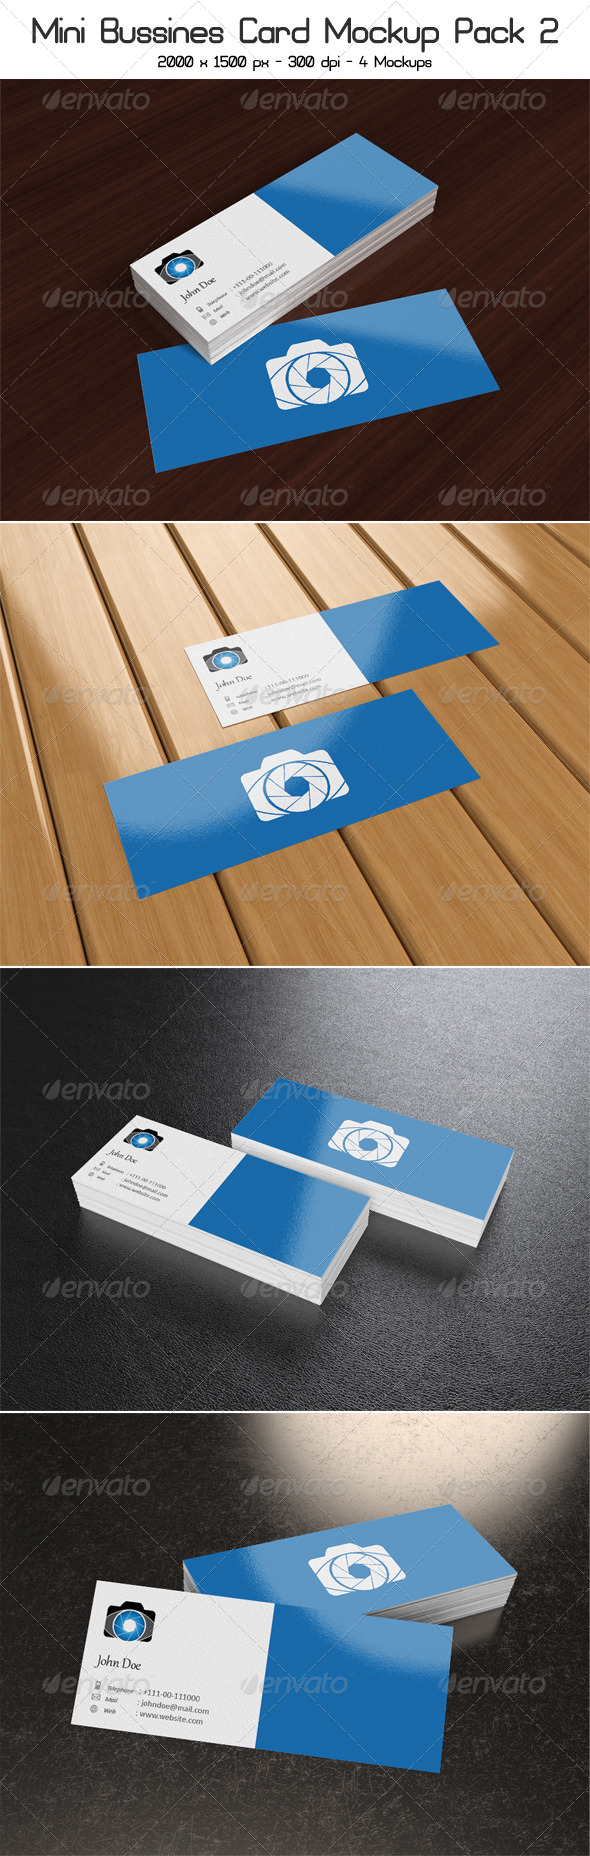 Mini Business Card Mock-Up Pack 2 - Business Cards Print